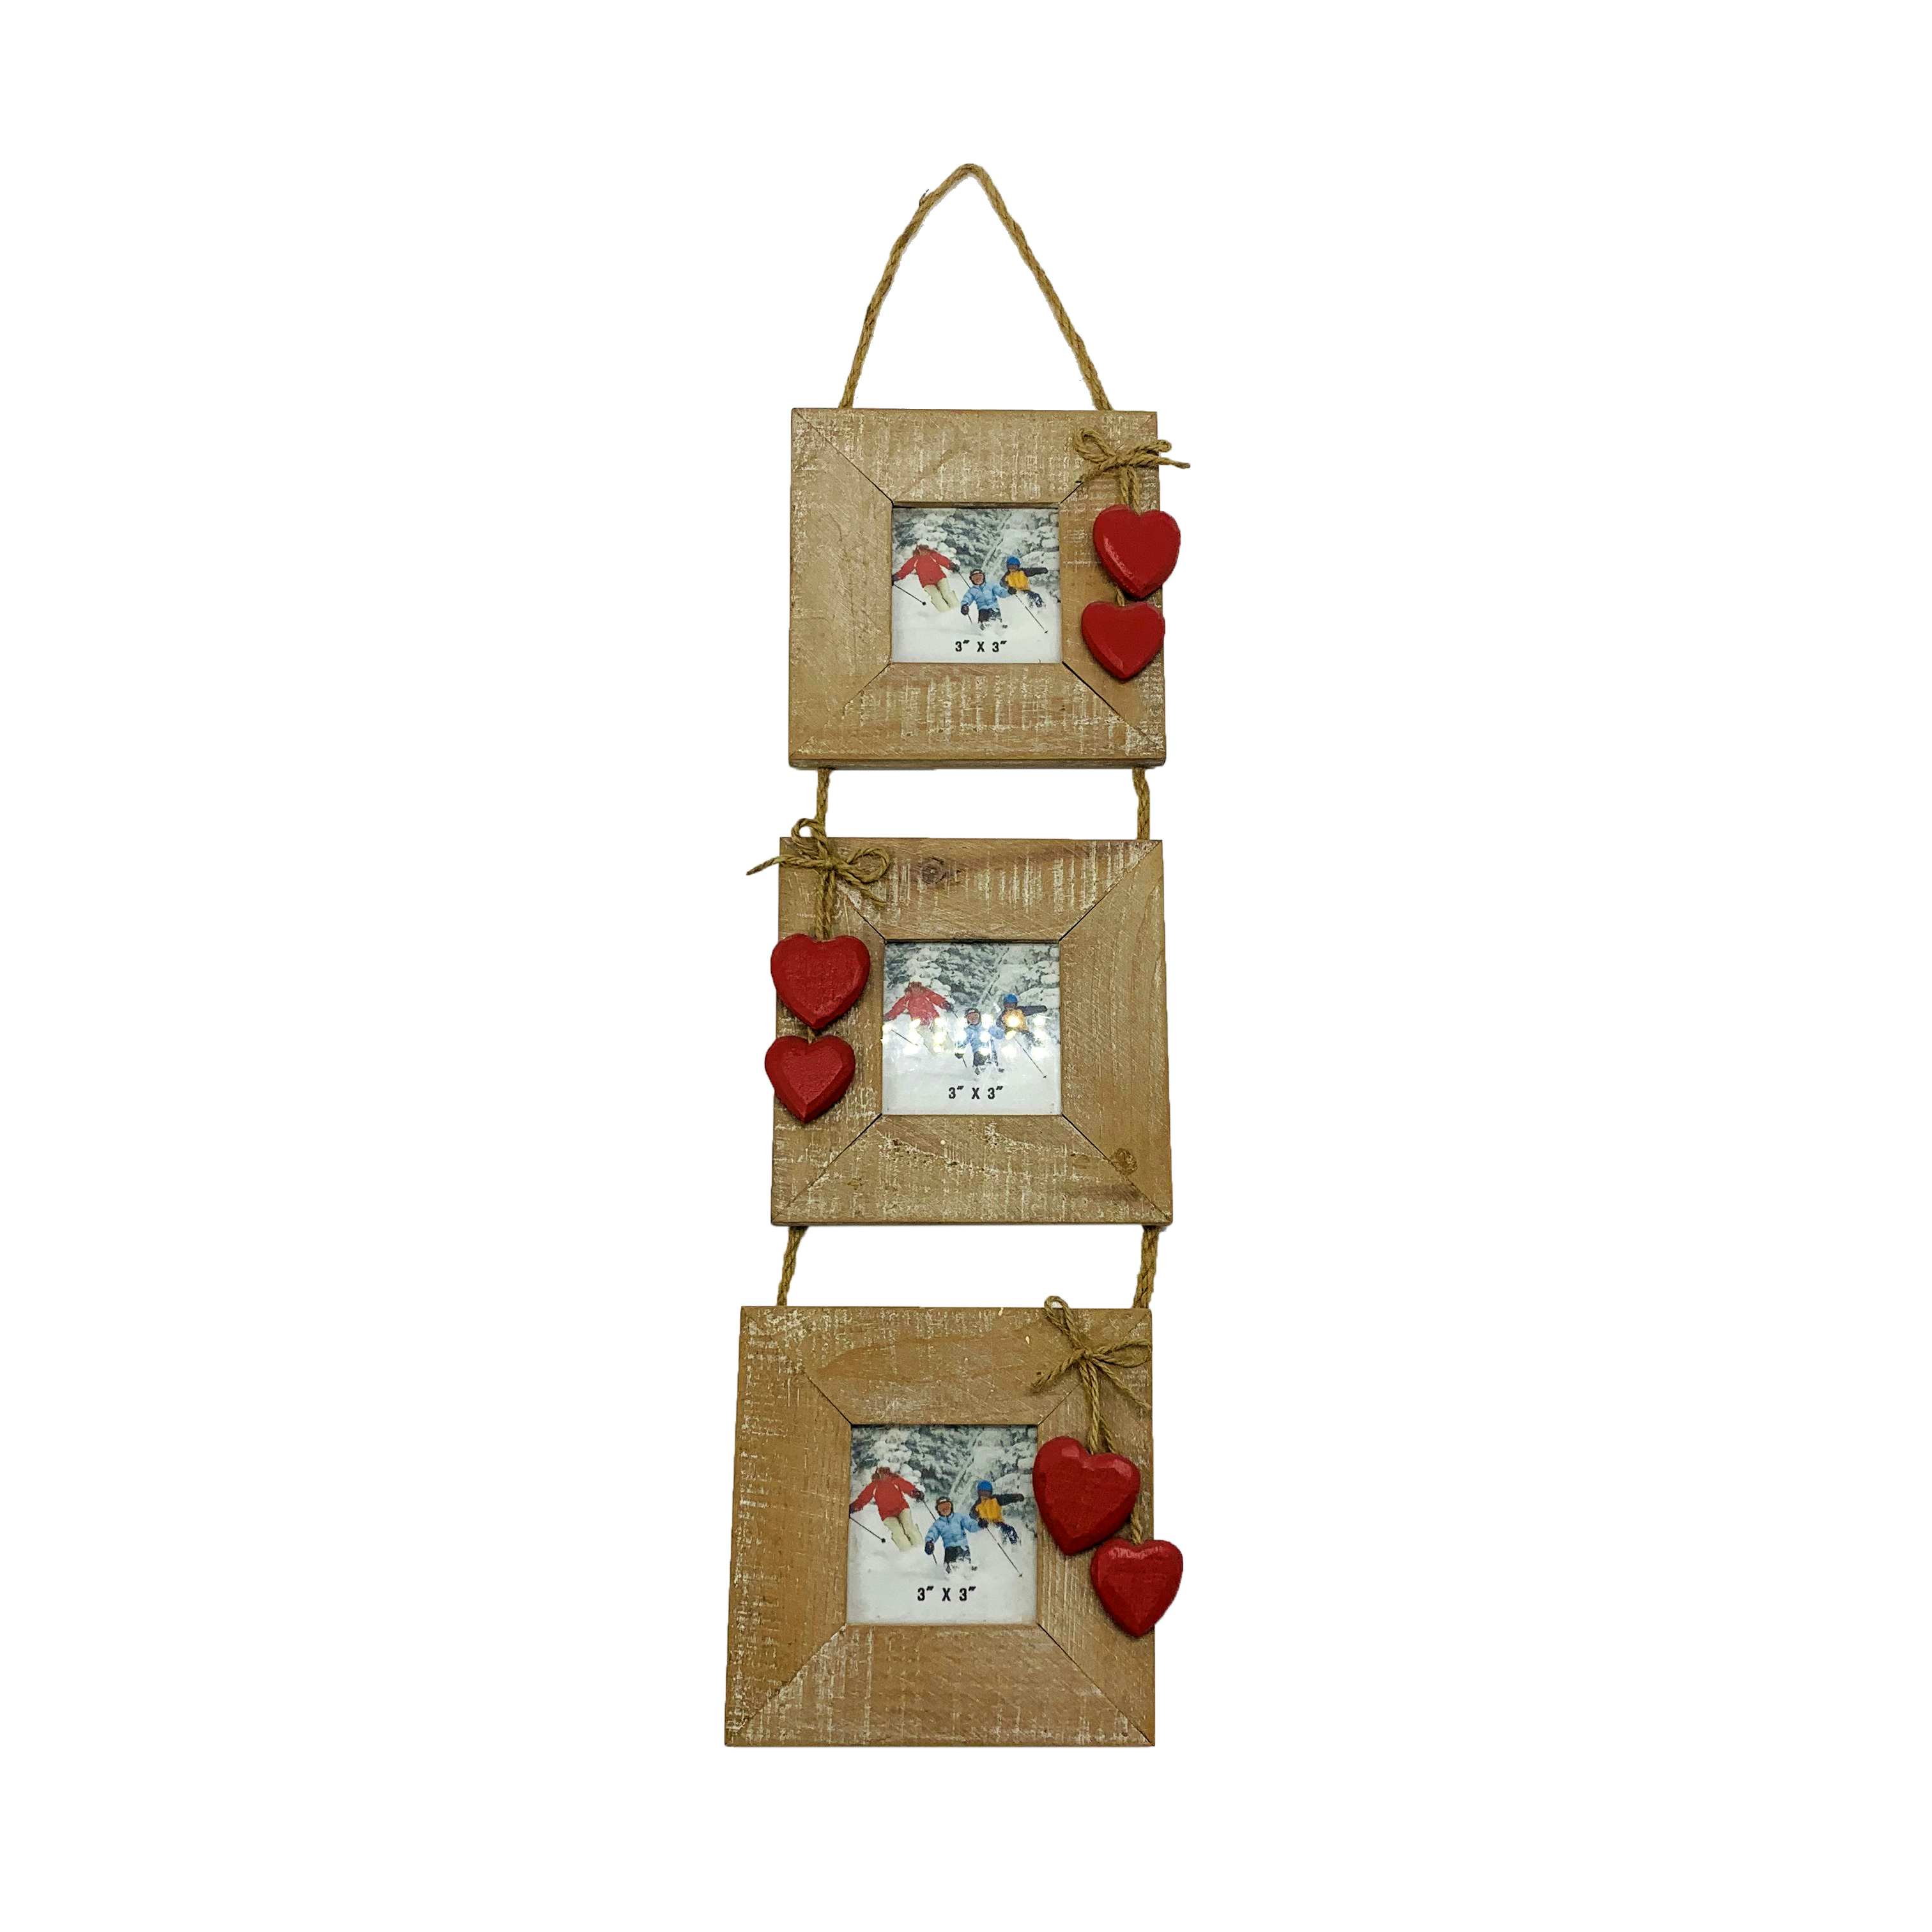 Antique hanging love heart picture <strong>frame</strong> new models wooden photo <strong>frame</strong> for wall